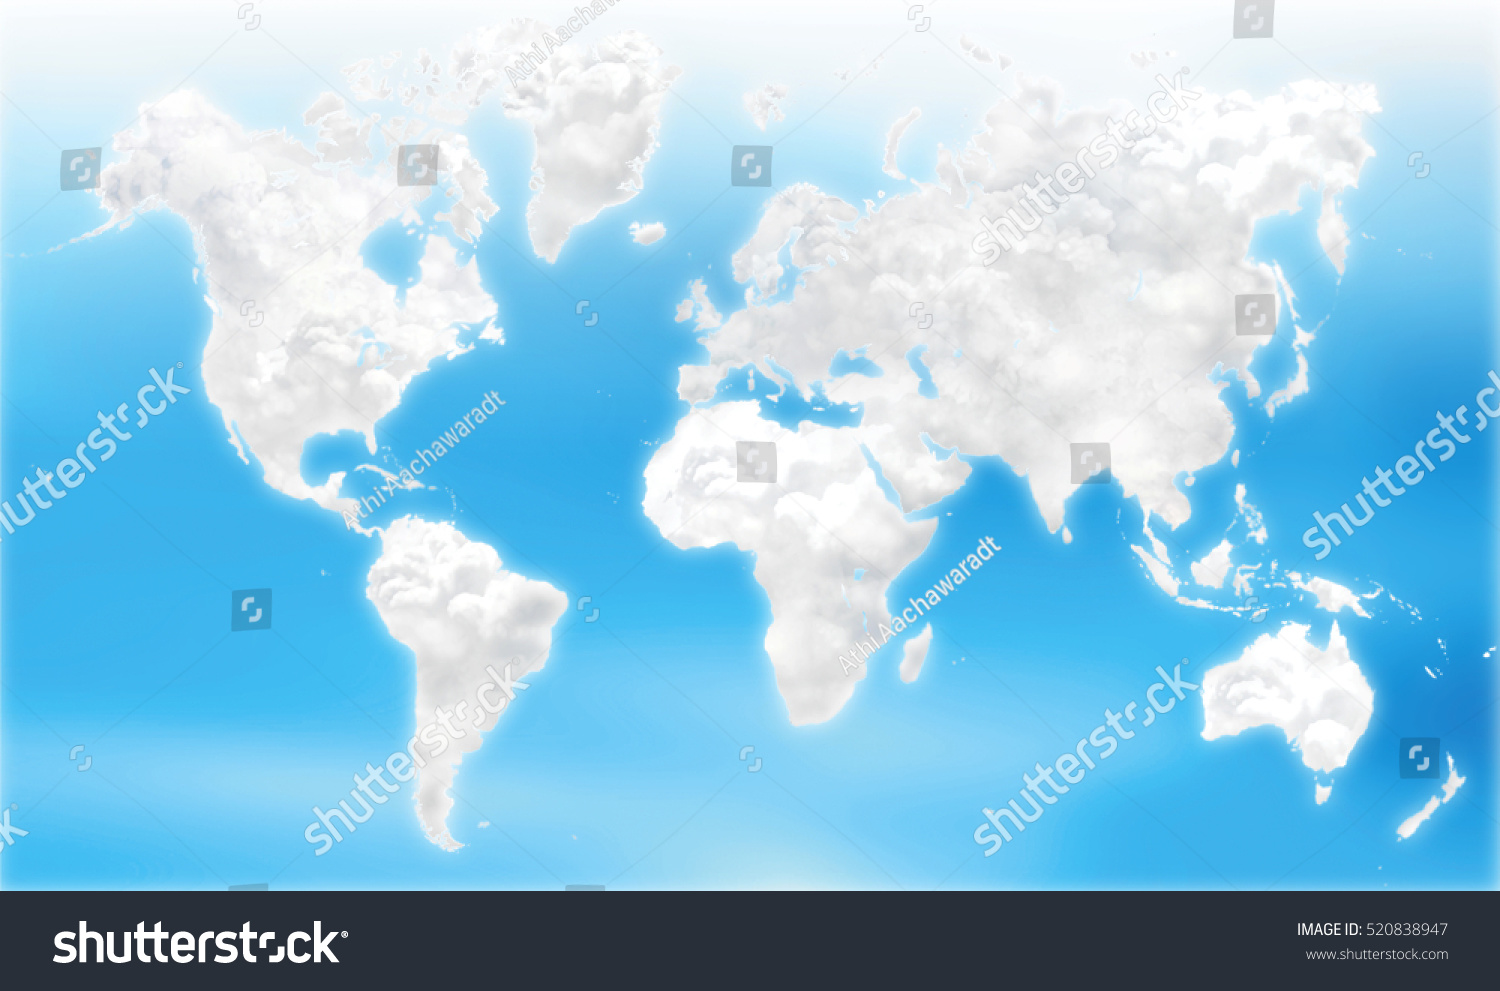 Cloud atlas cloudy world map geography stock illustration 520838947 cloud atlas cloudy in world map geography environmental concept gumiabroncs Choice Image